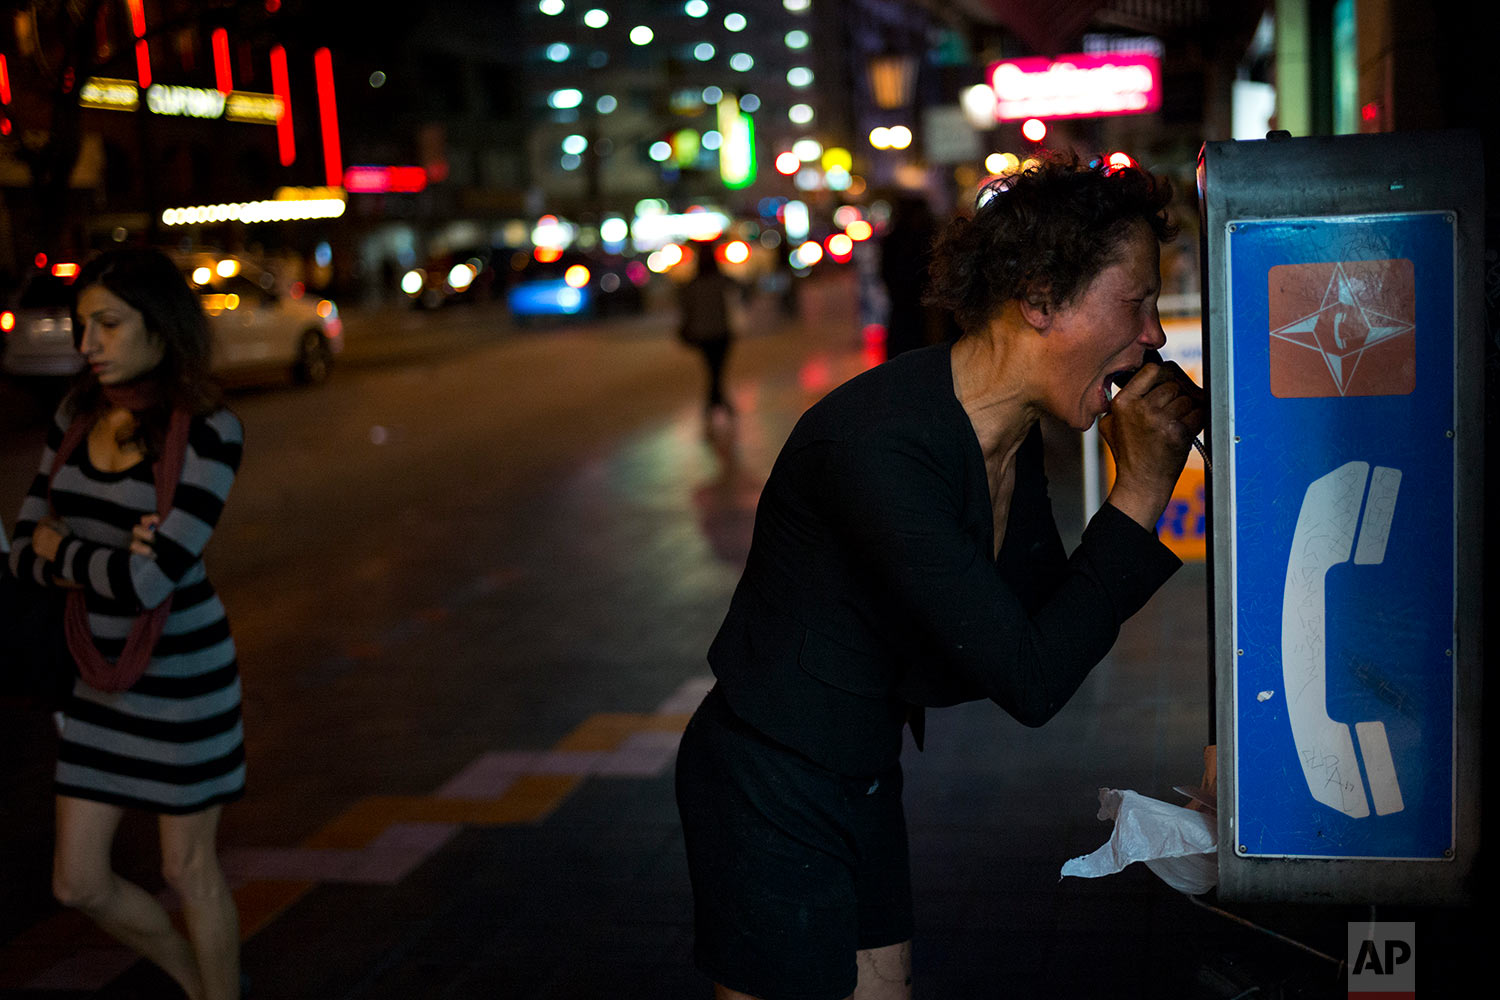 A mentally-ill homeless woman cries out while holding a pay phone after running through several blocks of downtown Los Angeles, yelling and screaming Saturday, Nov. 4, 2017. The woman, who said her name was Kara Miller when asked in September, is a Skid Row resident. Wandering around the streets where drugs rule, Miller talks to herself almost always and occasionally screams and curses as if seeing a ghost. (AP Photo/Jae C. Hong)